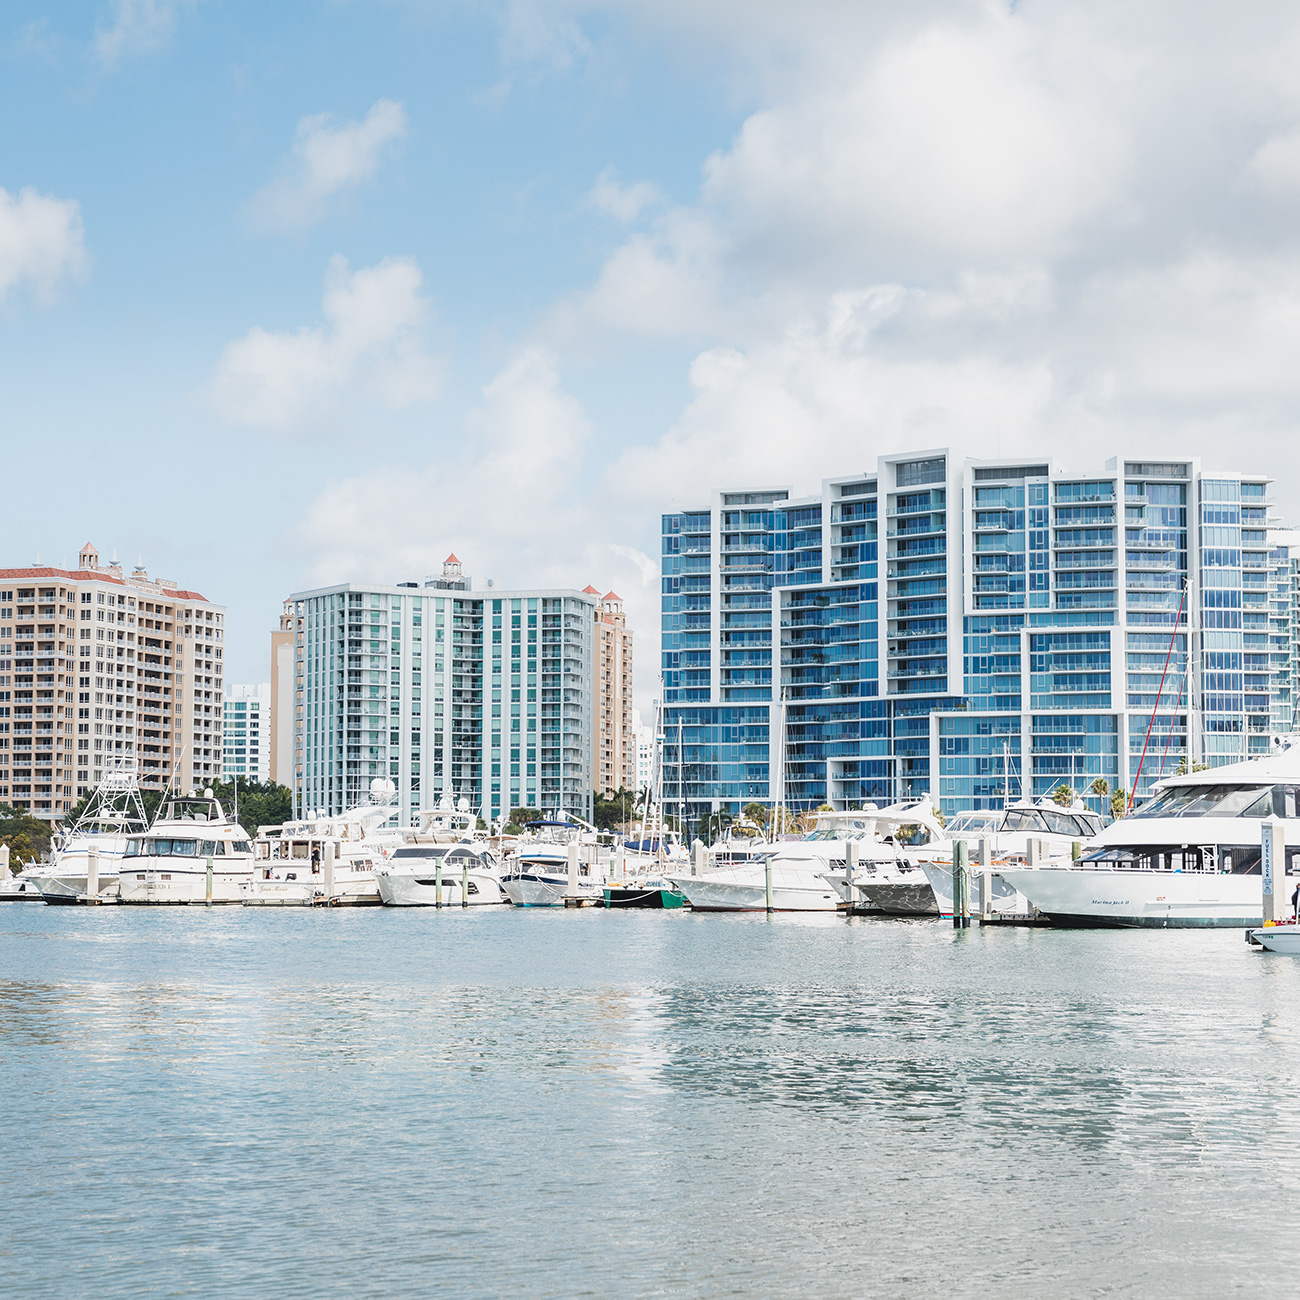 Over the past 10 years, Sarasota's bay front has seen significant growth to accommodate a rise in both tourism and year-round residents.